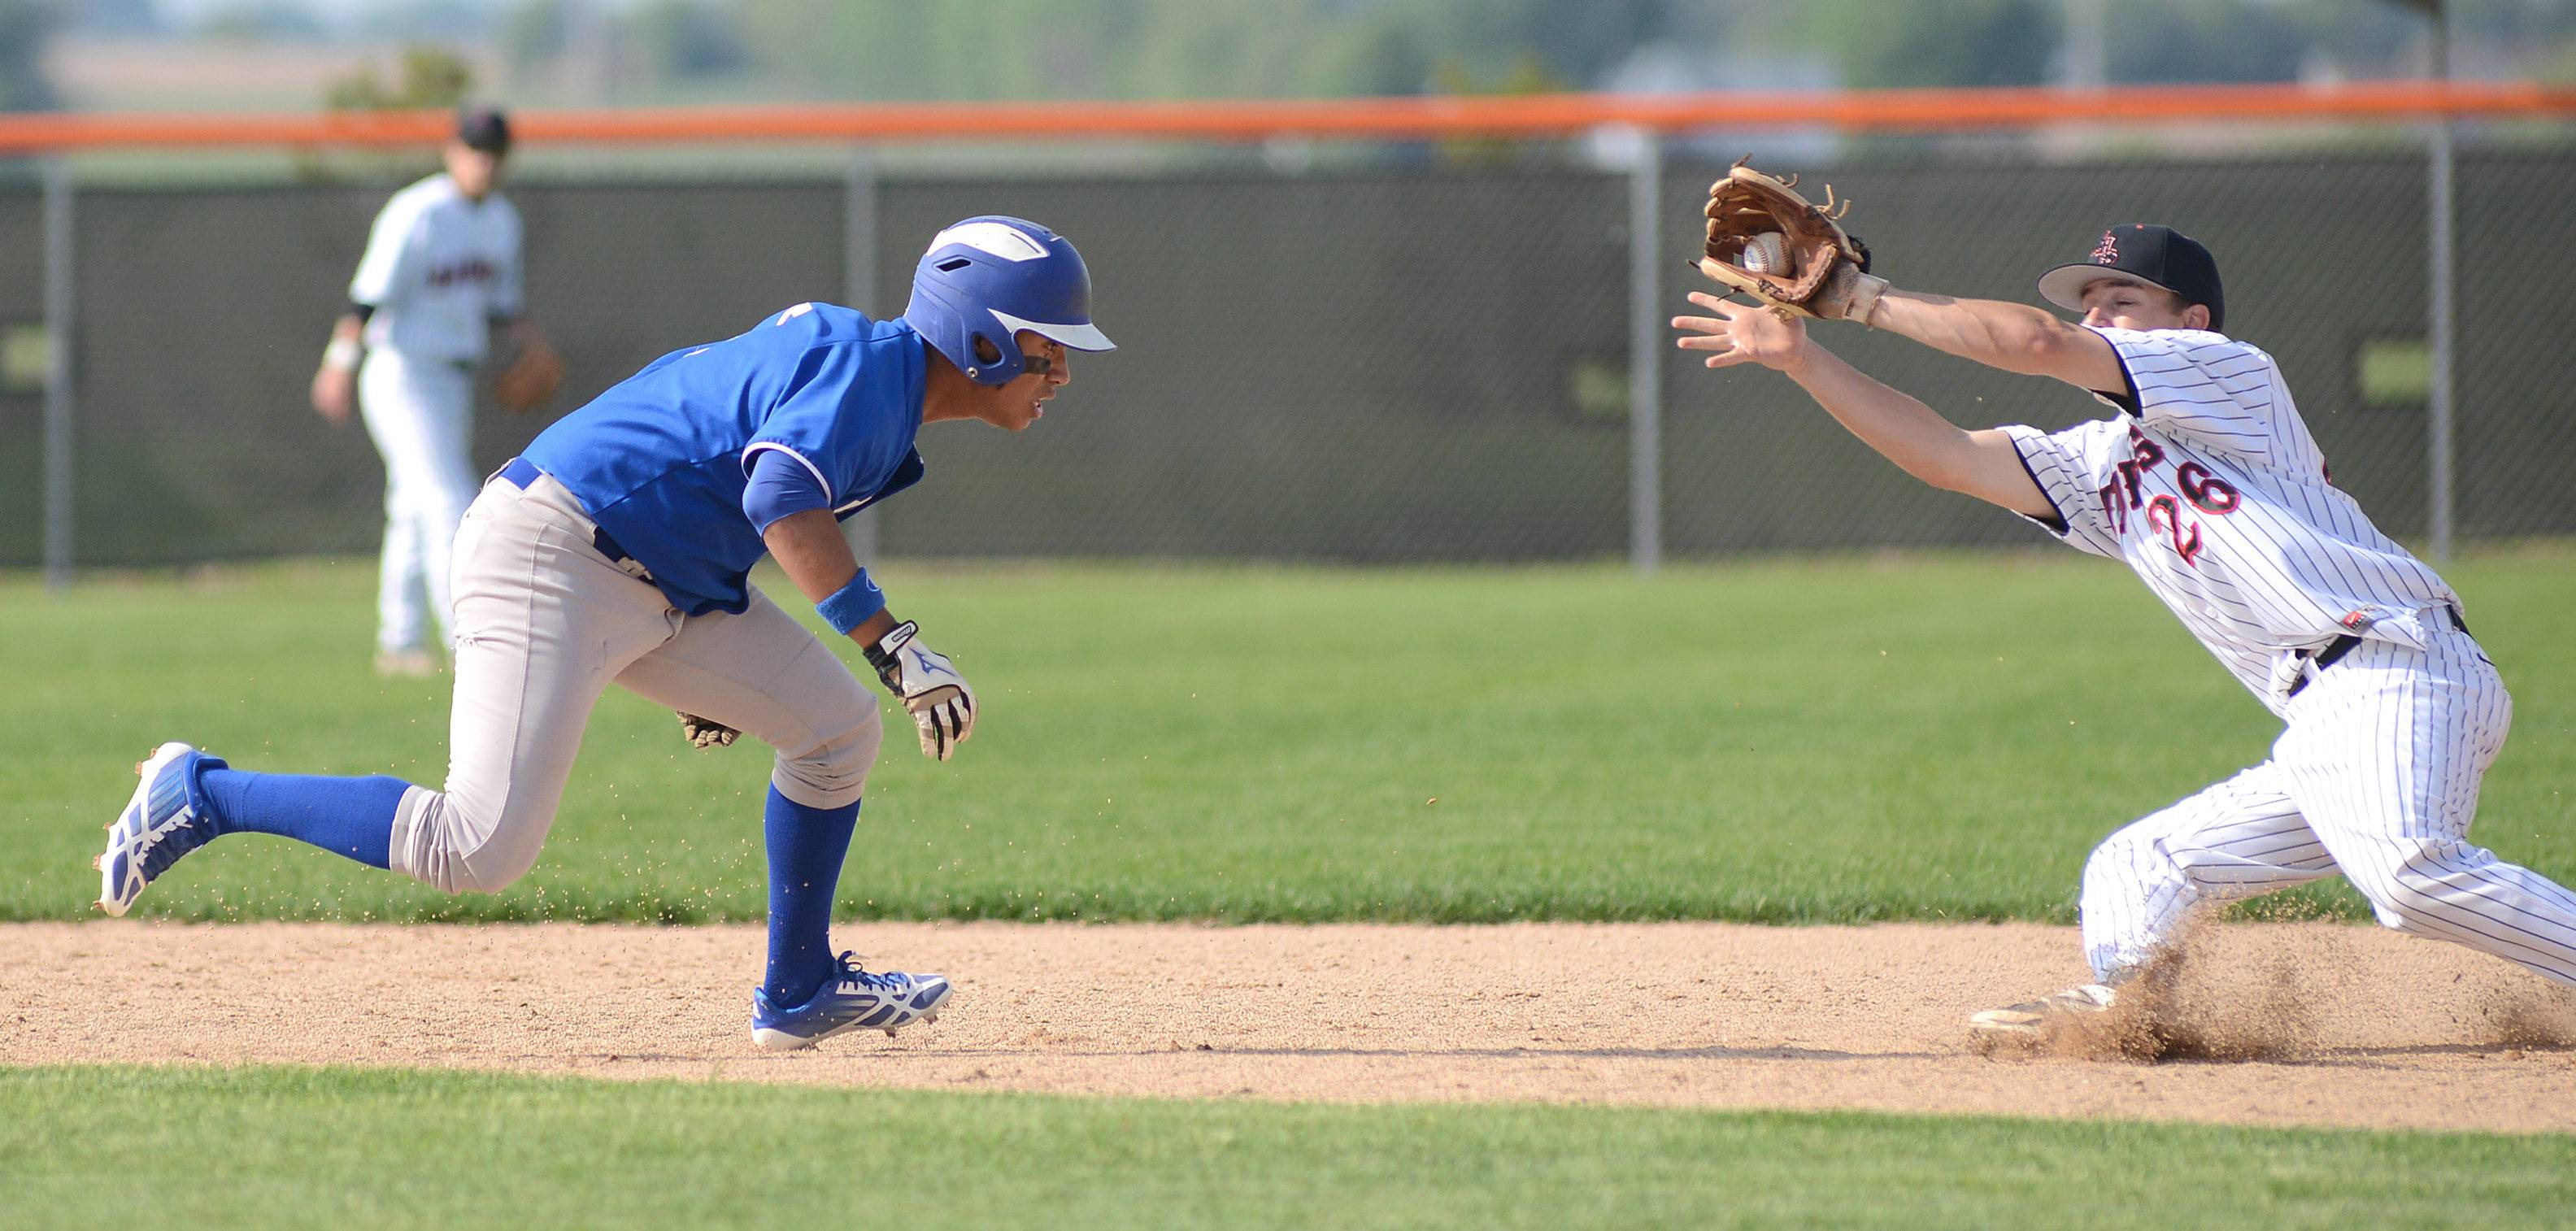 Larkin's Jonathan Avila, left, and Huntley's Matt Sullivan slide towards each other with Avila being tagged out as he scrambles back to second base in the with inning of the Class 4A regional semifinals at DeKalb High School on Wednesday, May 28.